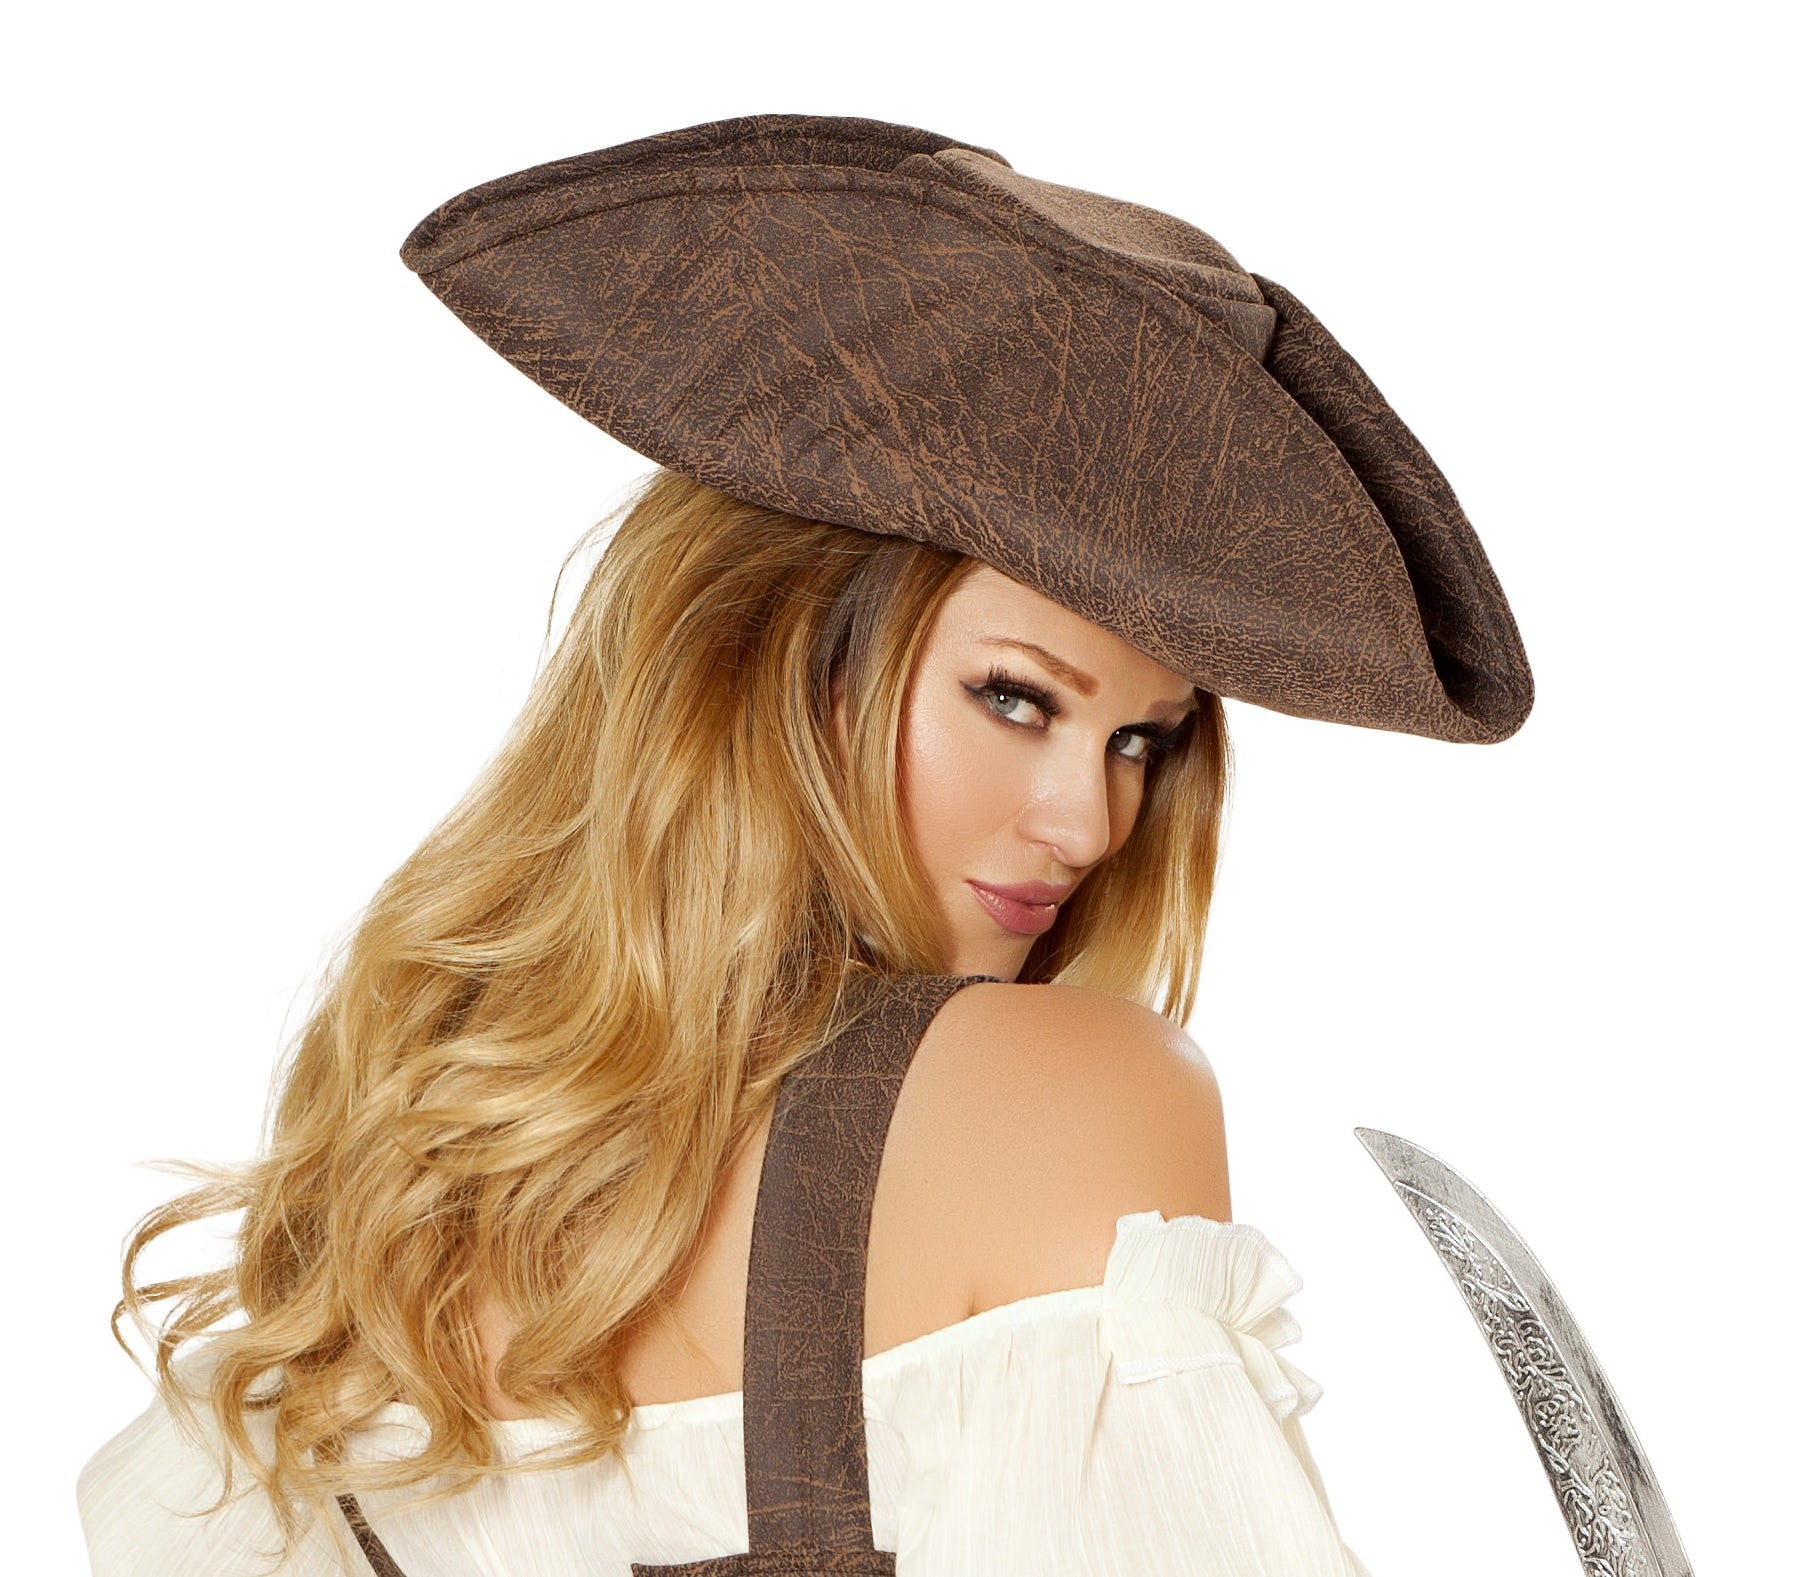 H4575 Beautiful Pirate Maiden Hat ${description} | Roma Costume and Roma Confidential wholesale manufacturer of Women Apparel bulk world wide wholesale and world wide drop ship services for Adult Halloween Costumes, Sexy and Elegant Lingerie, Rave Clothing, Club wear, and Christmas Costumes. Accessories, mens, Roma Costume, Inc., Roma Costume, Roma Confidential, Wholesale clothing, drop ship, drop ship service, Wholesale Lingerie, Wholesale Adult Halloween Costumes, Rave Clothing, EDM Clothing, Festival Wear, Christmas Costumes, Clubwear, Club wear.